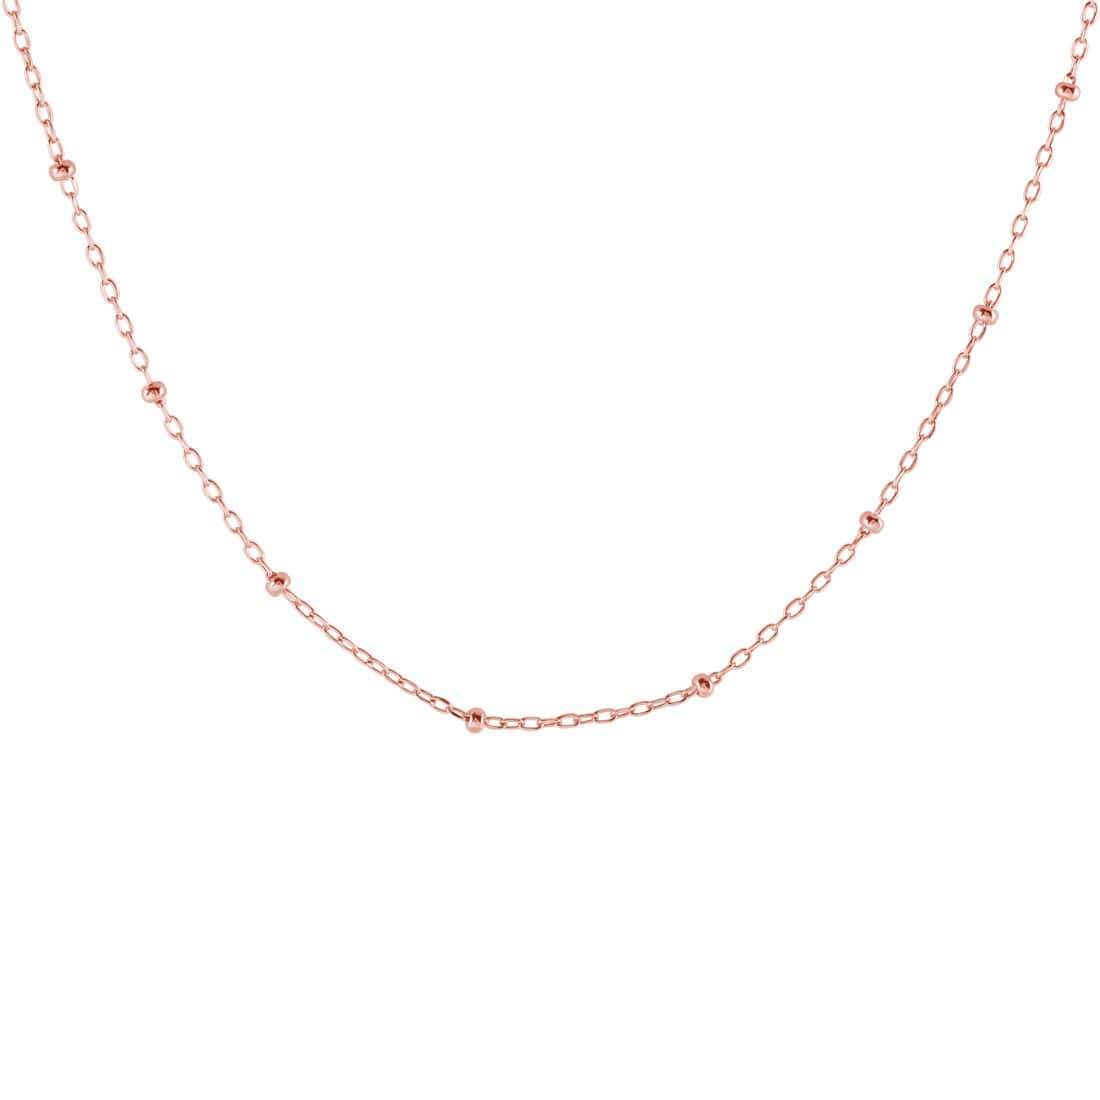 Midsummer Star Necklaces Rose Gold Disco Chain Necklace